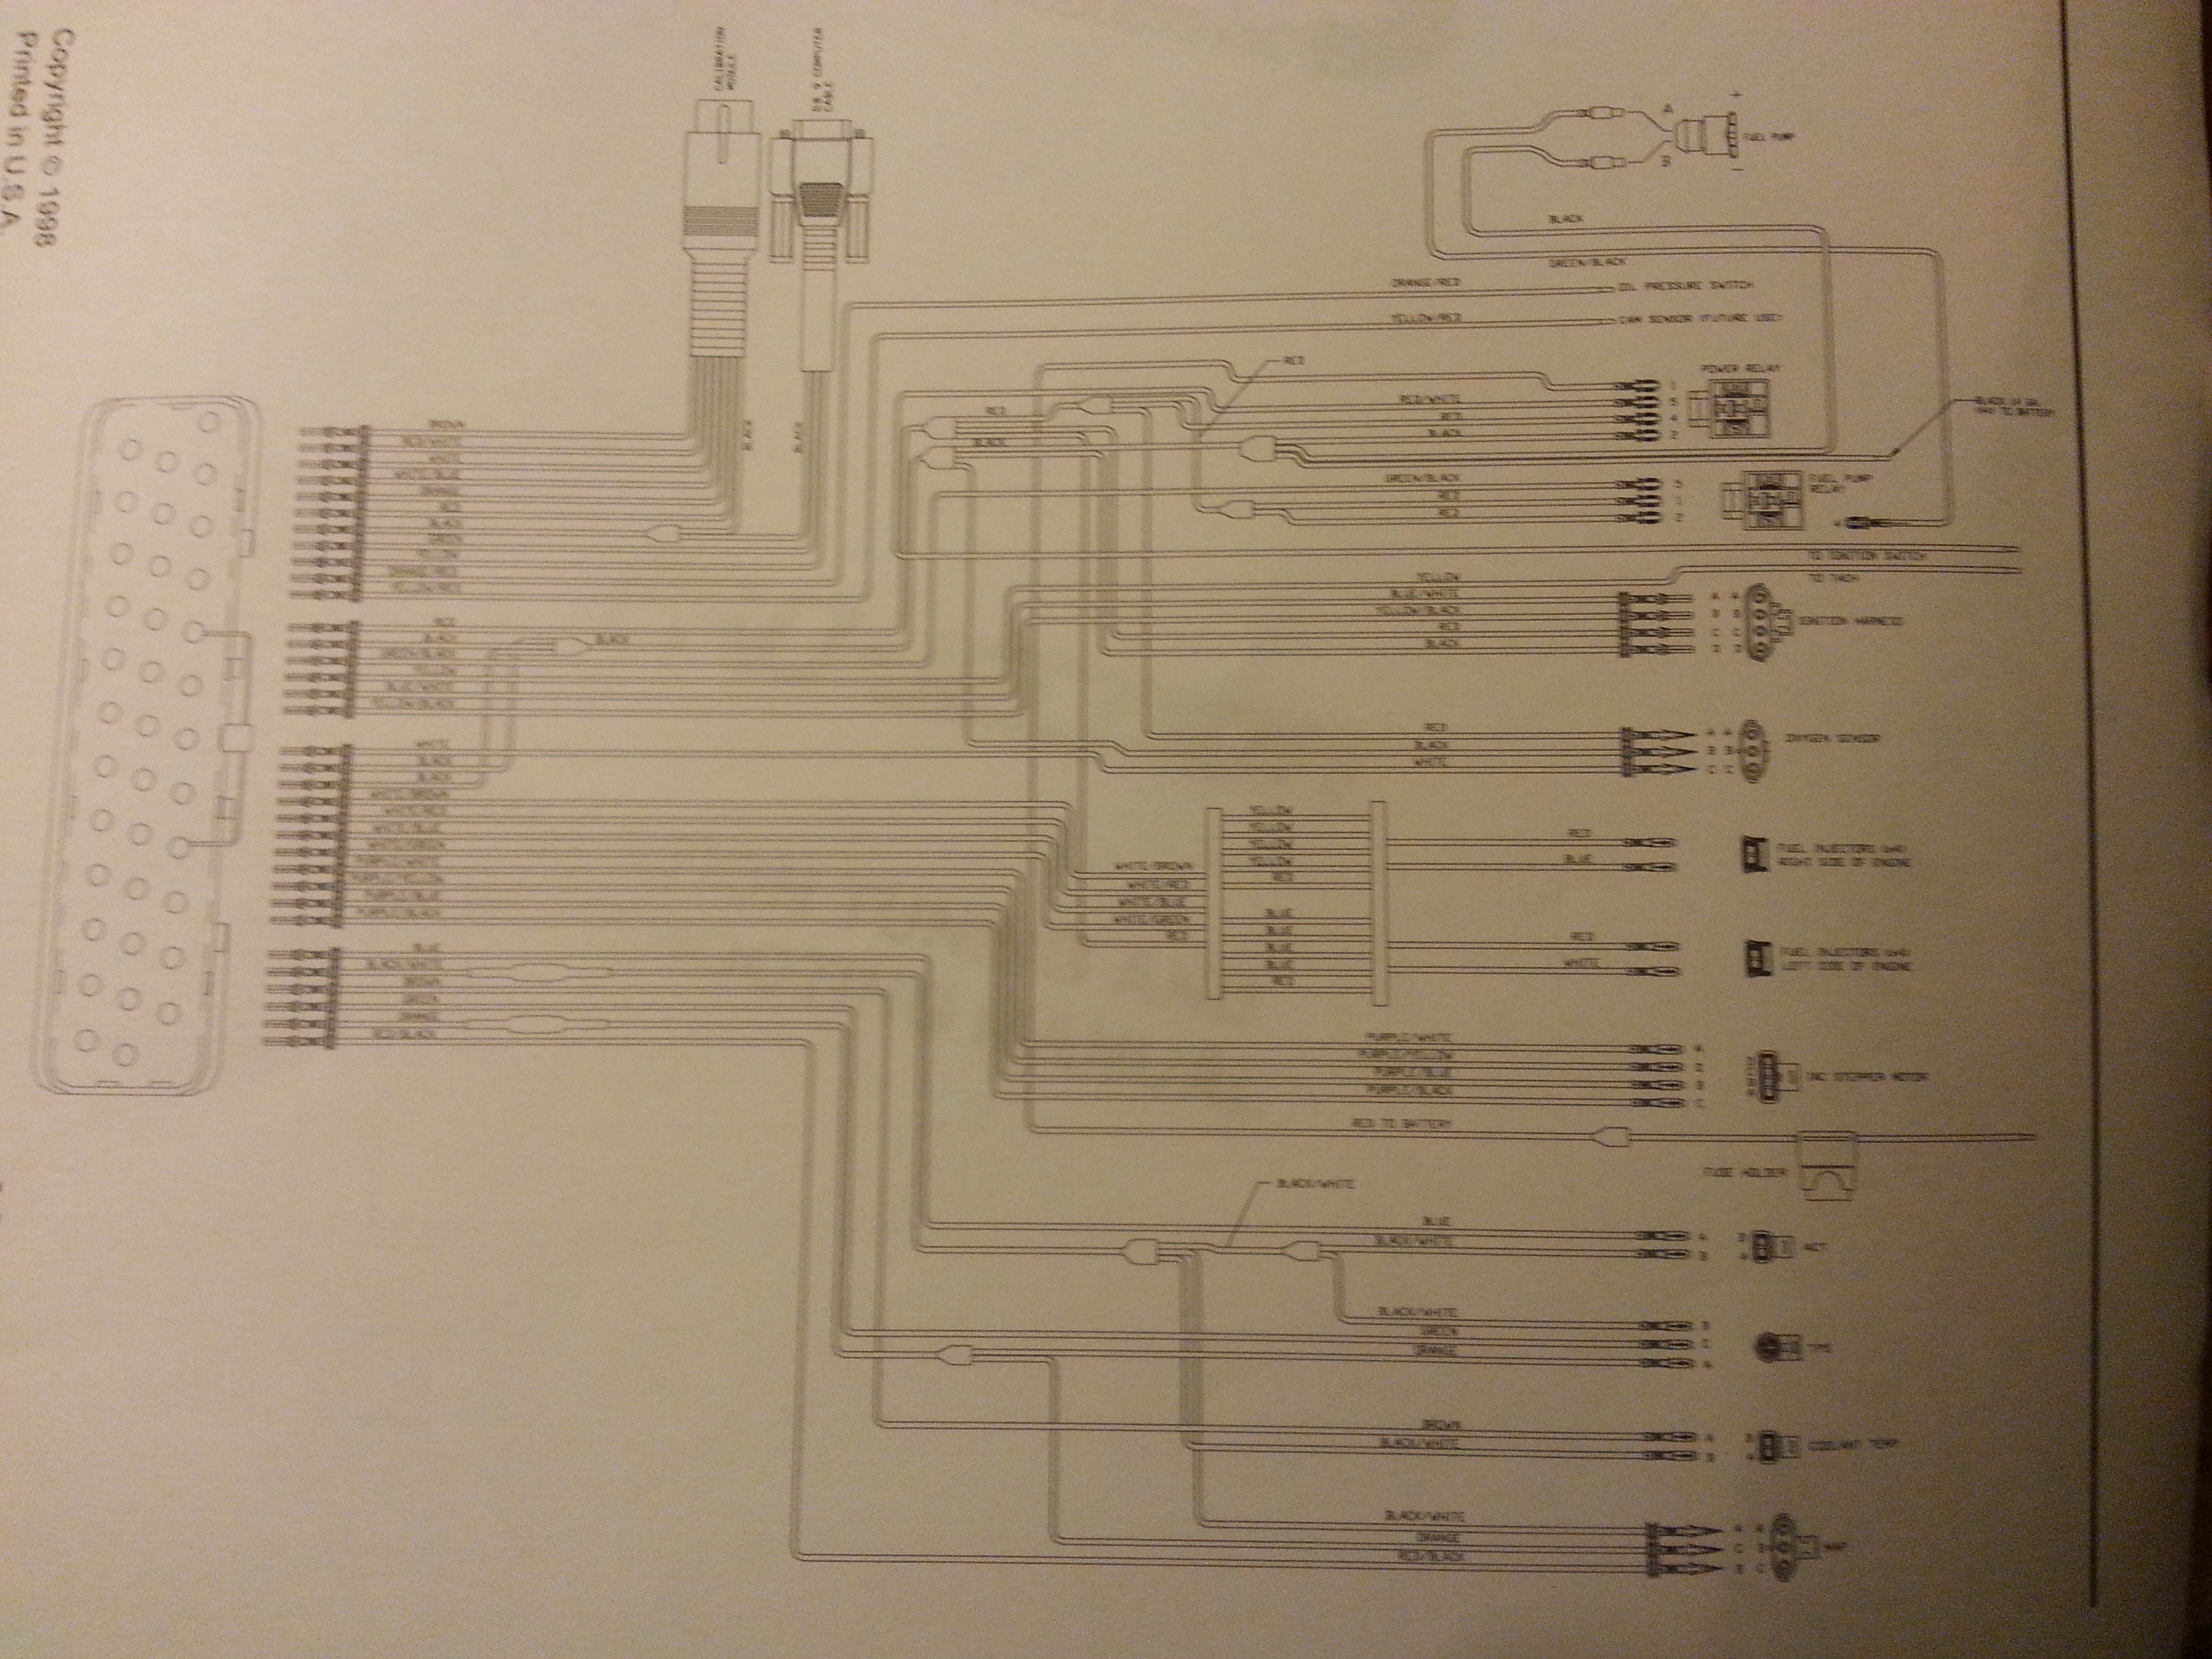 33150967963_f08af33678_o holley pro jection 2 mpi ecu holley mpi commander 950 wiring diagram at virtualis.co